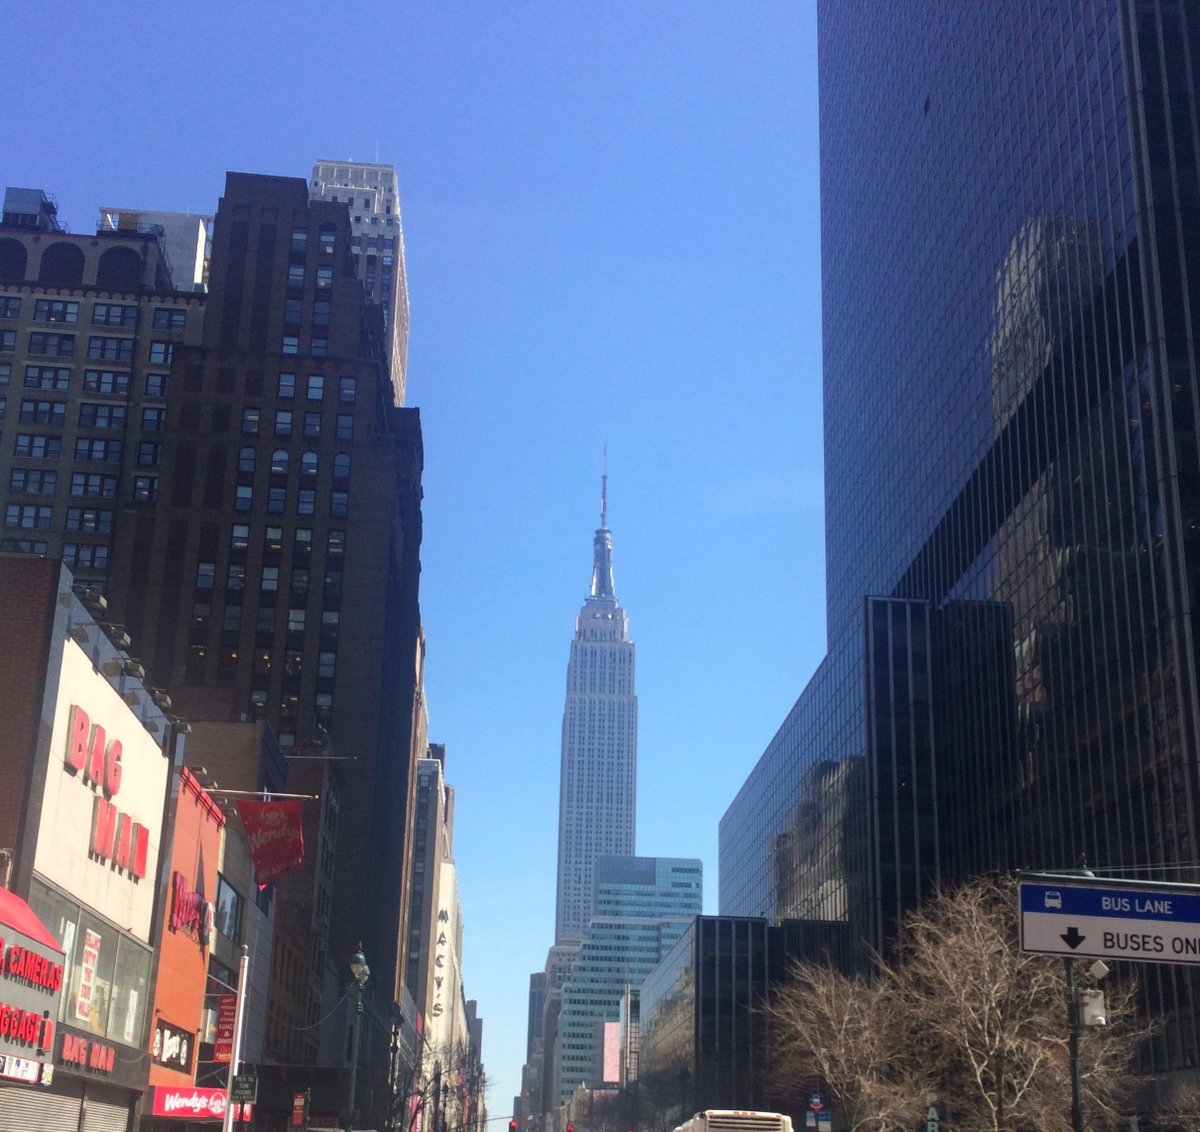 64°F and not a cloud in the sky, has summer finally arrived in NYC? #Summer #NY #EmpireState http://t.co/7Z4VVdu3z4